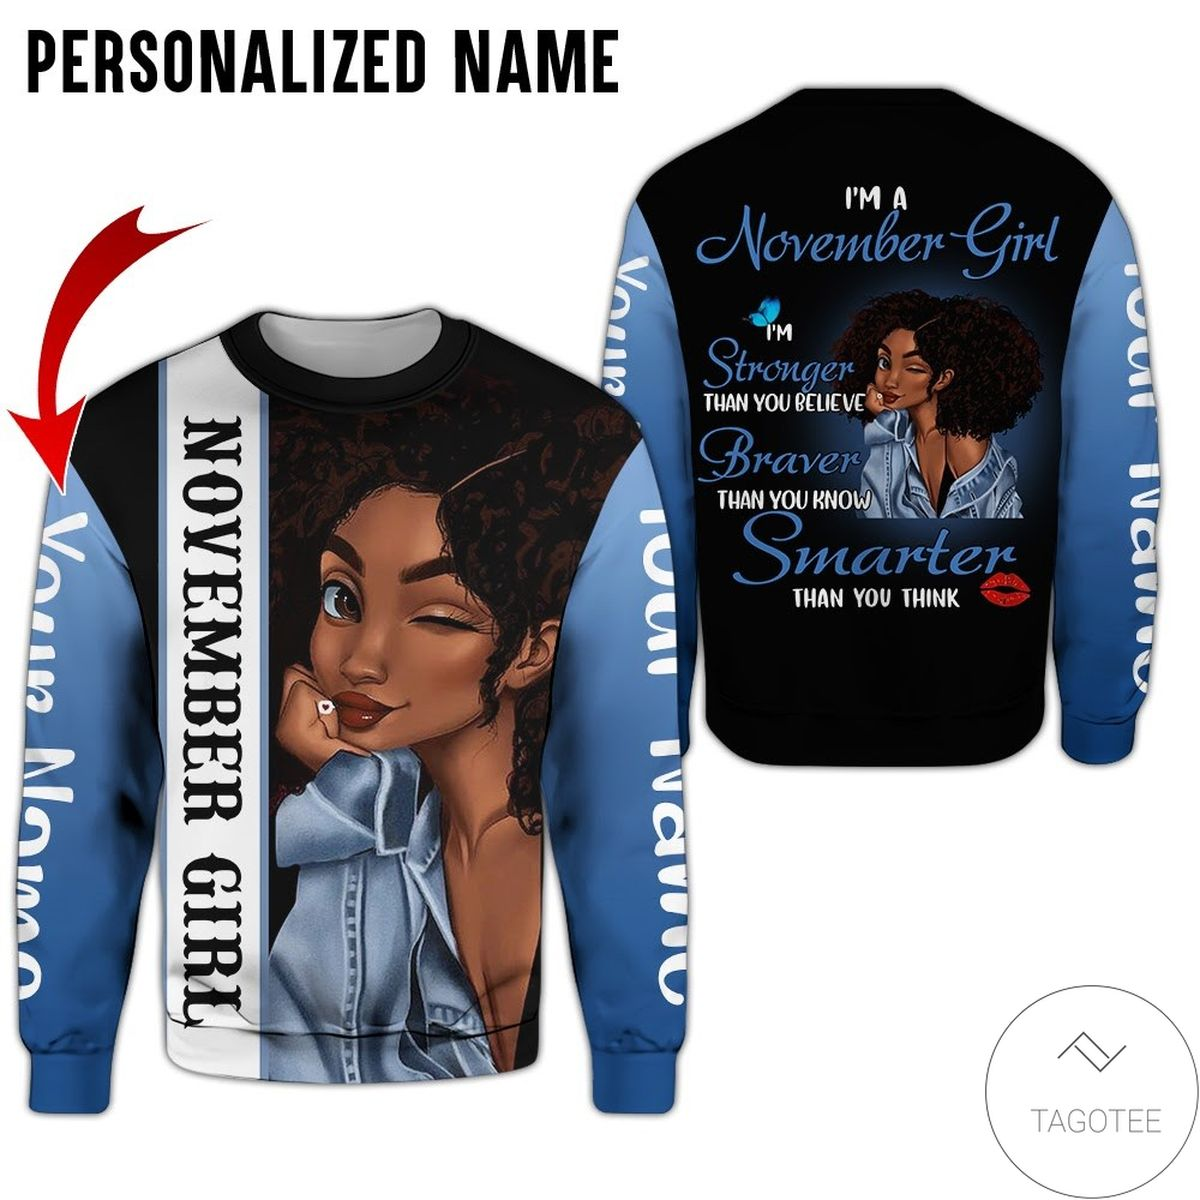 Personalized Name November Girl I'm Stronger Than You Believe All Over Print Hoodiez